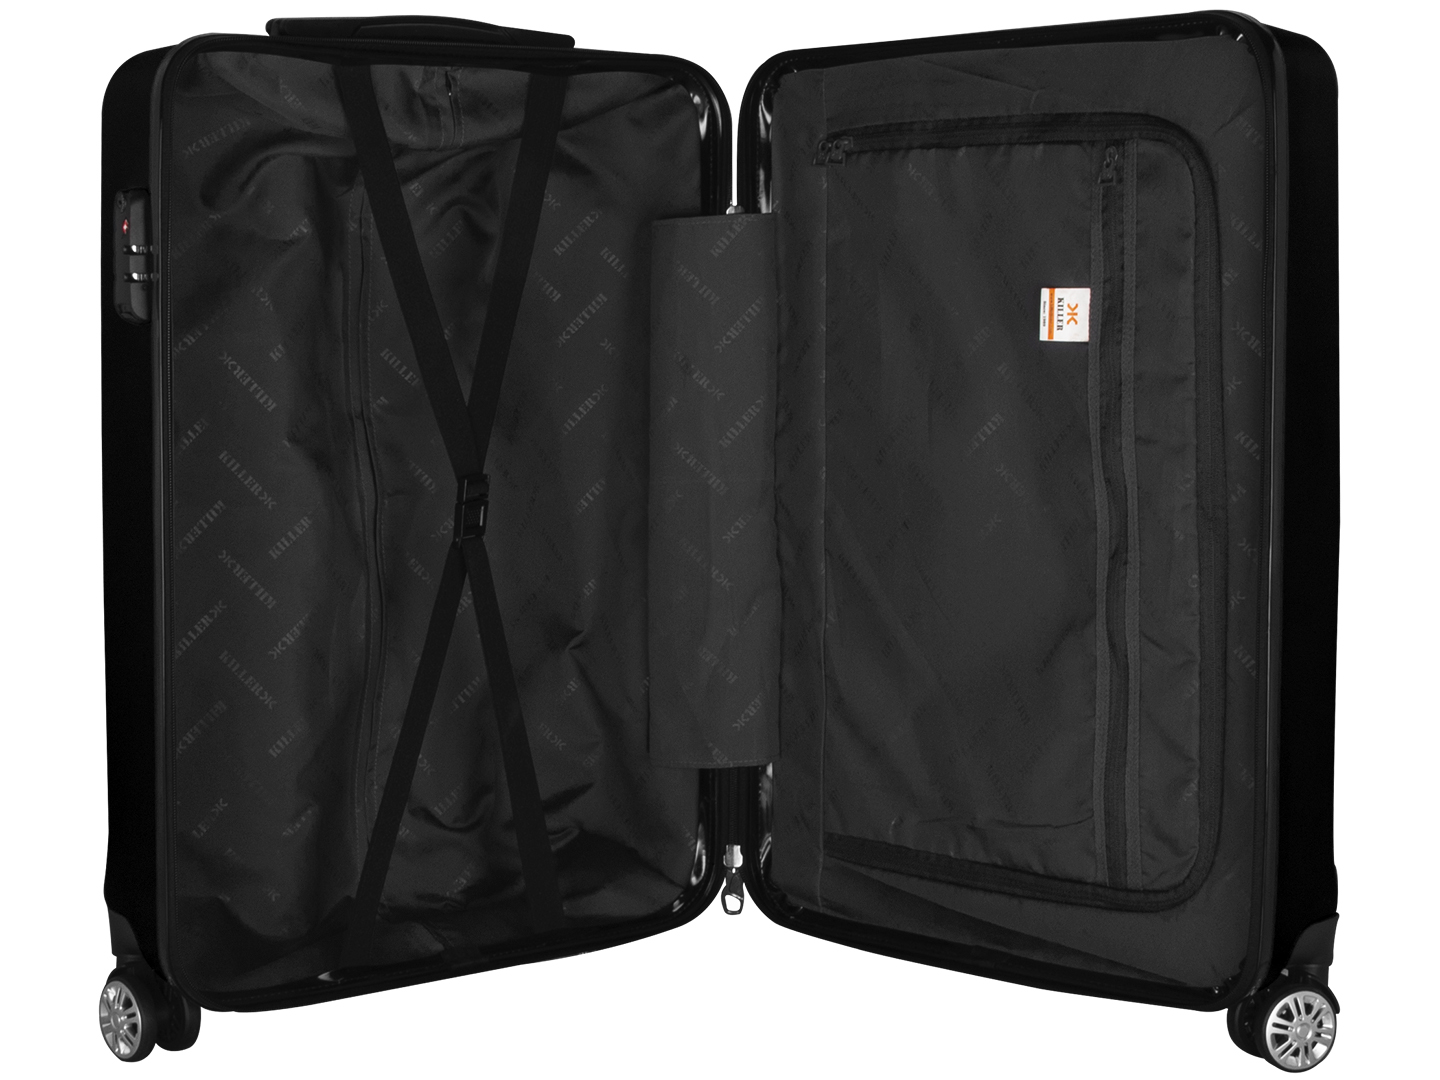 Hilton Polycarbonate (24 inches) Black Trolley Suitcase